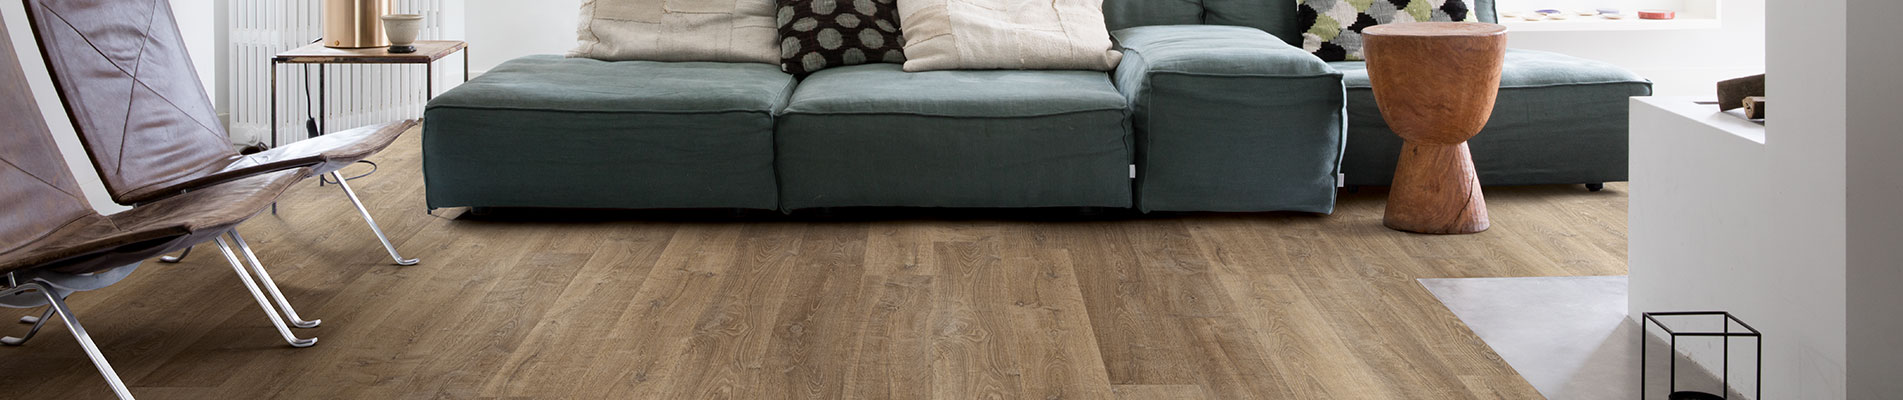 Awesome Impressa Laminate Flooring Ideas Best Modern House Plans